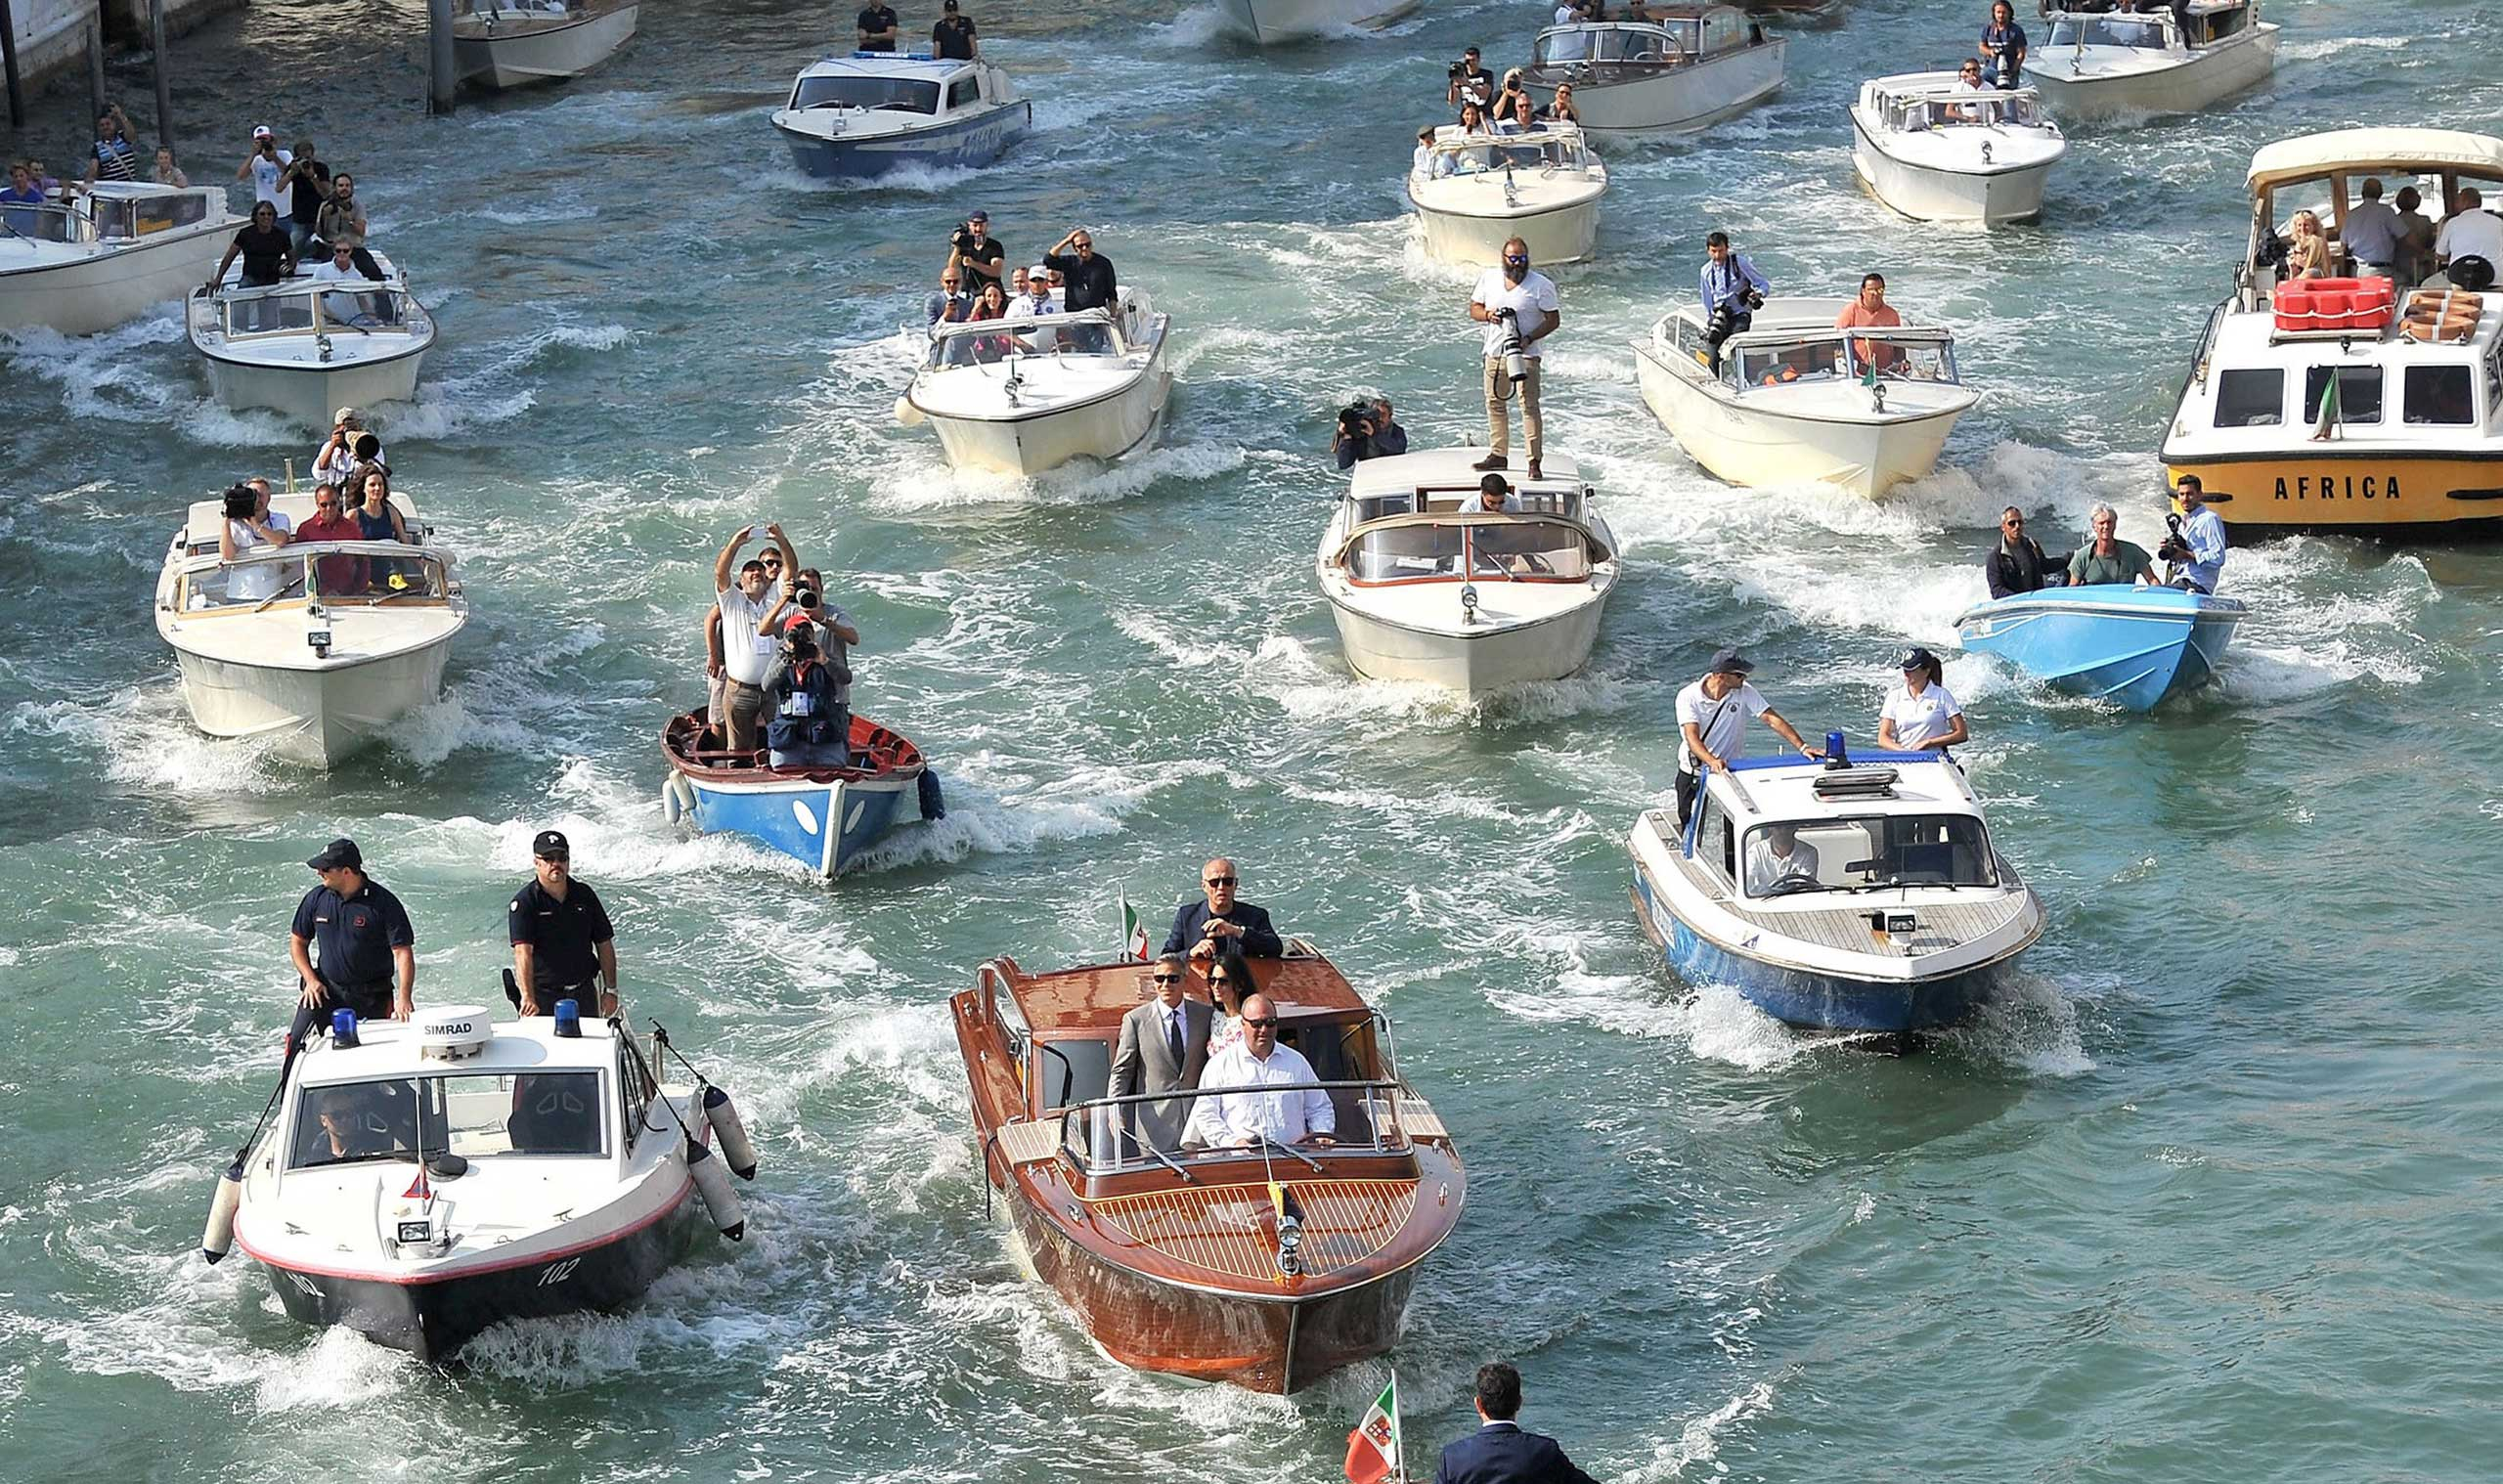 Sept. 28, 2014. The boat at center front, carrying George Clooney and his wife Amal Alamuddin is surrounded by media and security boats as they cruise the Grand Canal after leaving the Aman luxury Hotel in Venice, Italy. George Clooney married human rights lawyer Amal Alamuddin Saturday, the actor's representative said, out of sight of pursuing paparazzi and adoring crowds.